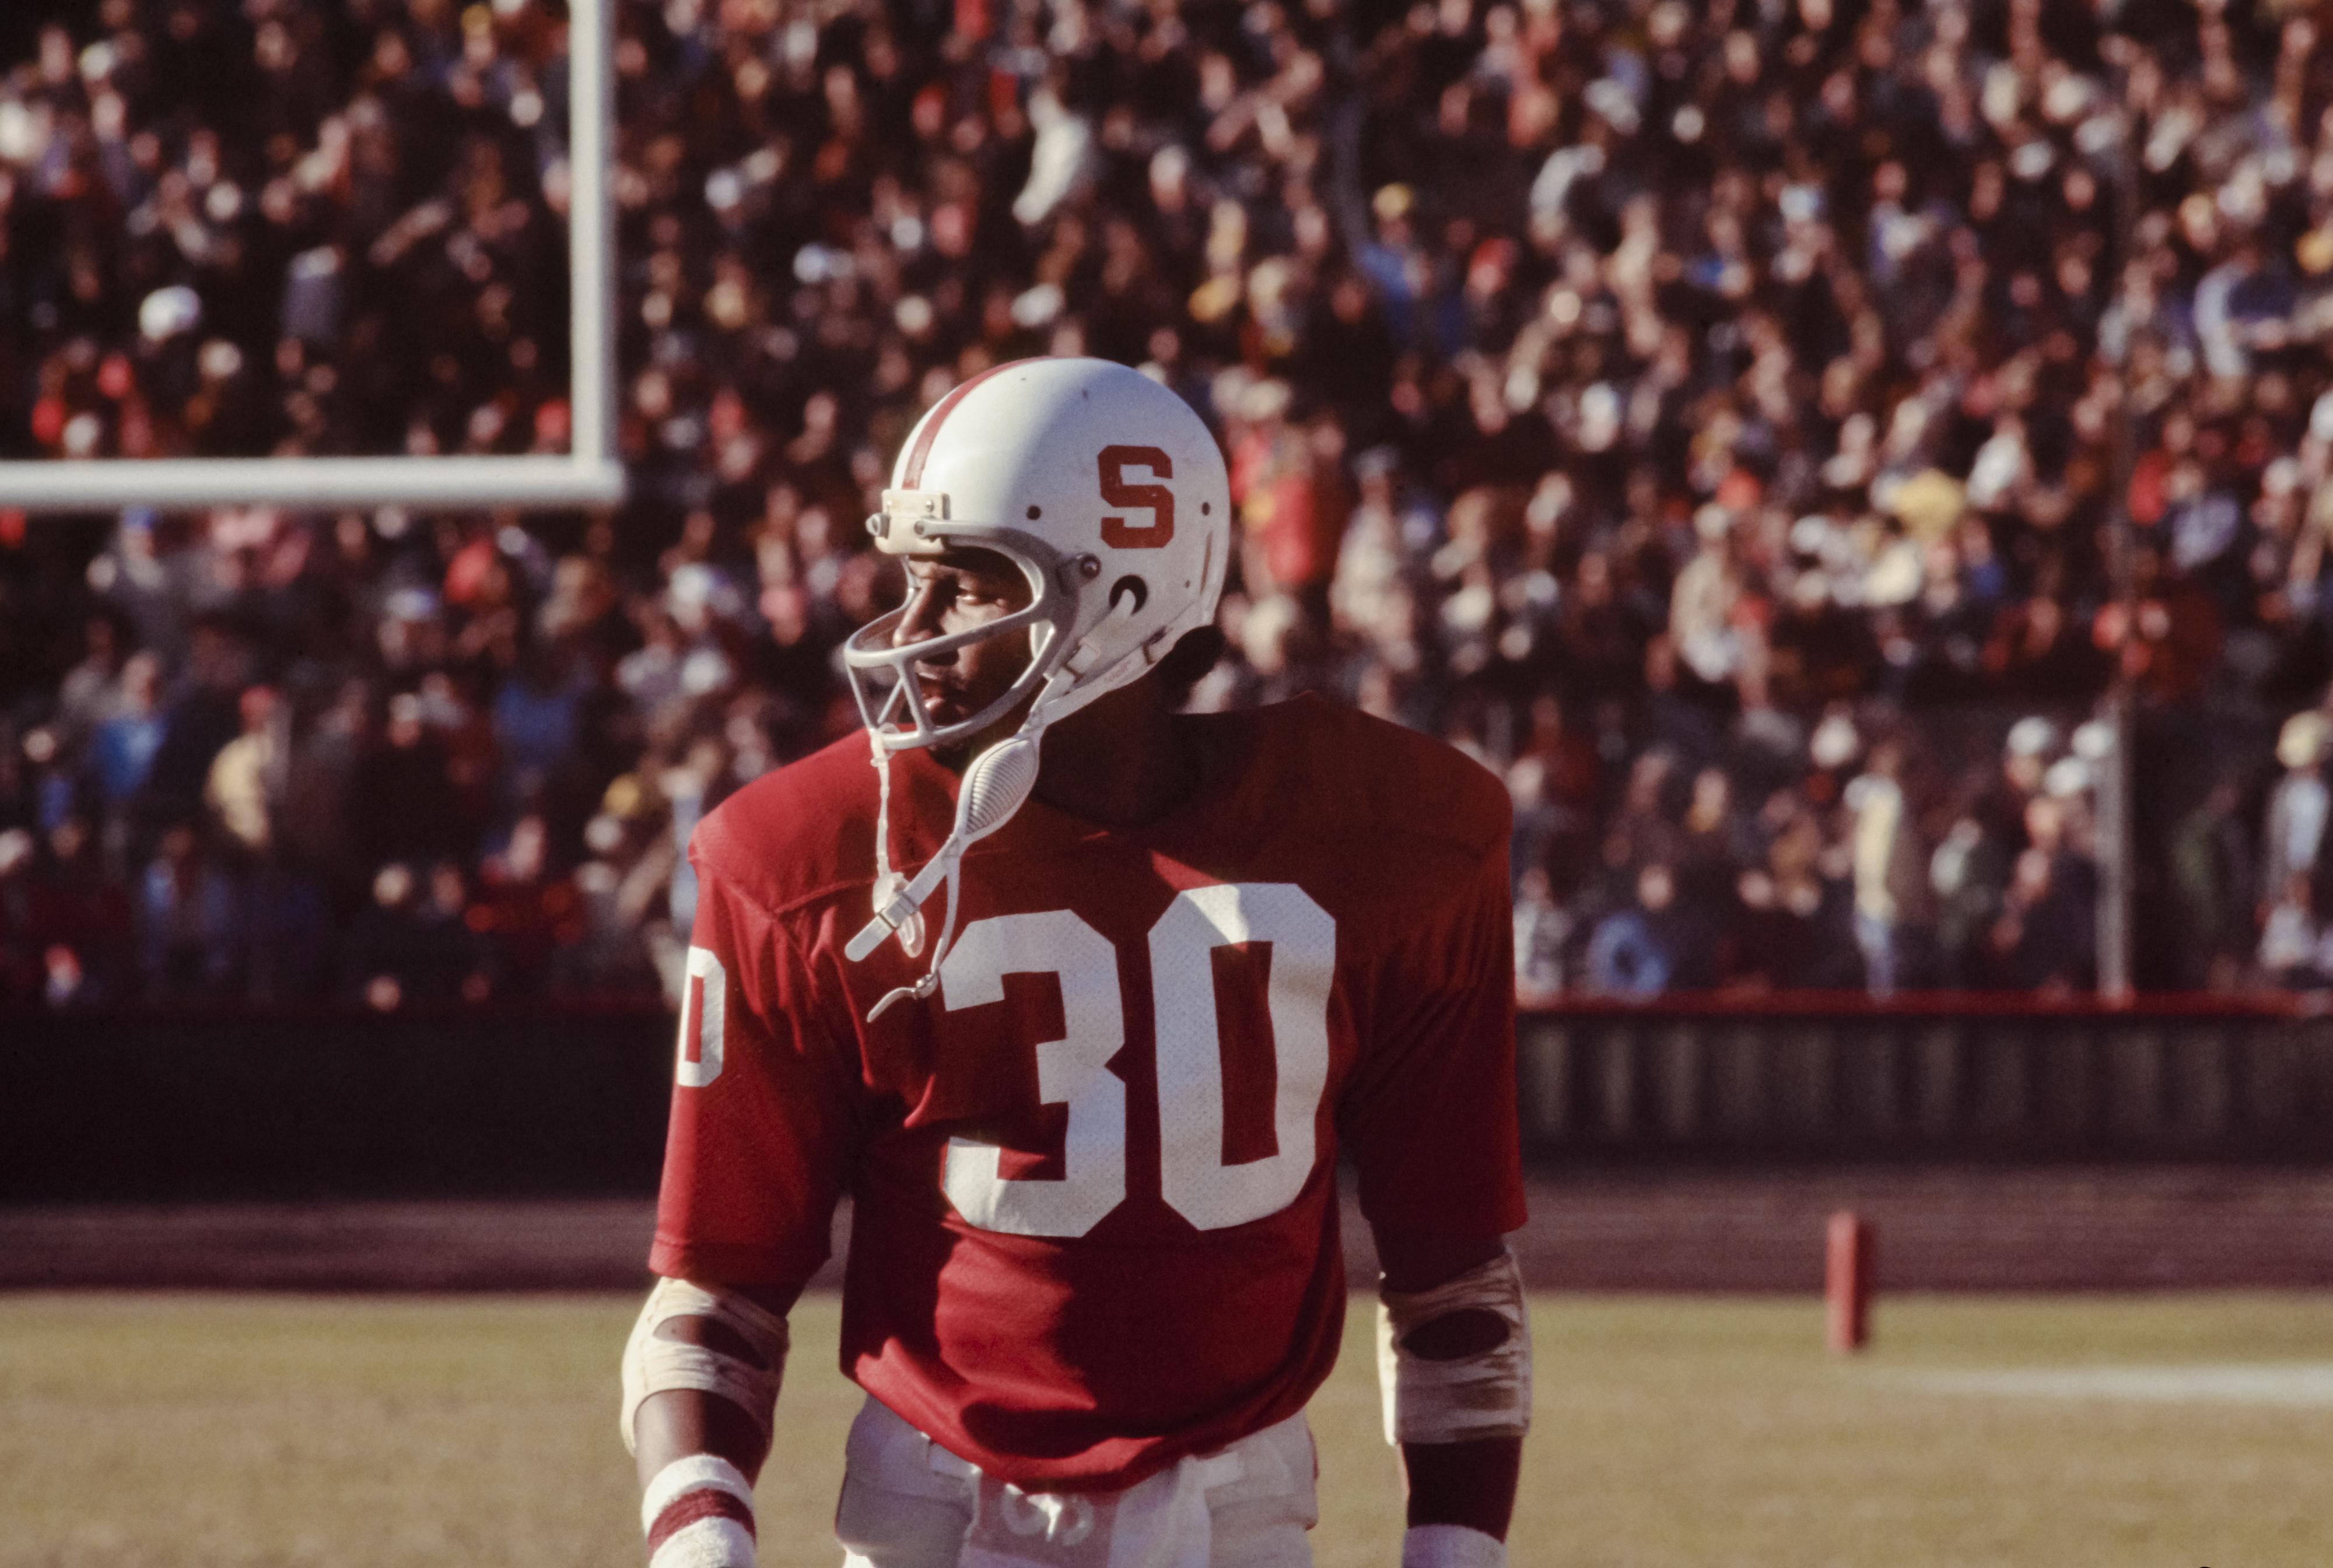 Wide receiver James Lofton of Stanford University leaves the field during a PAC-8 NCAA football game in 1977